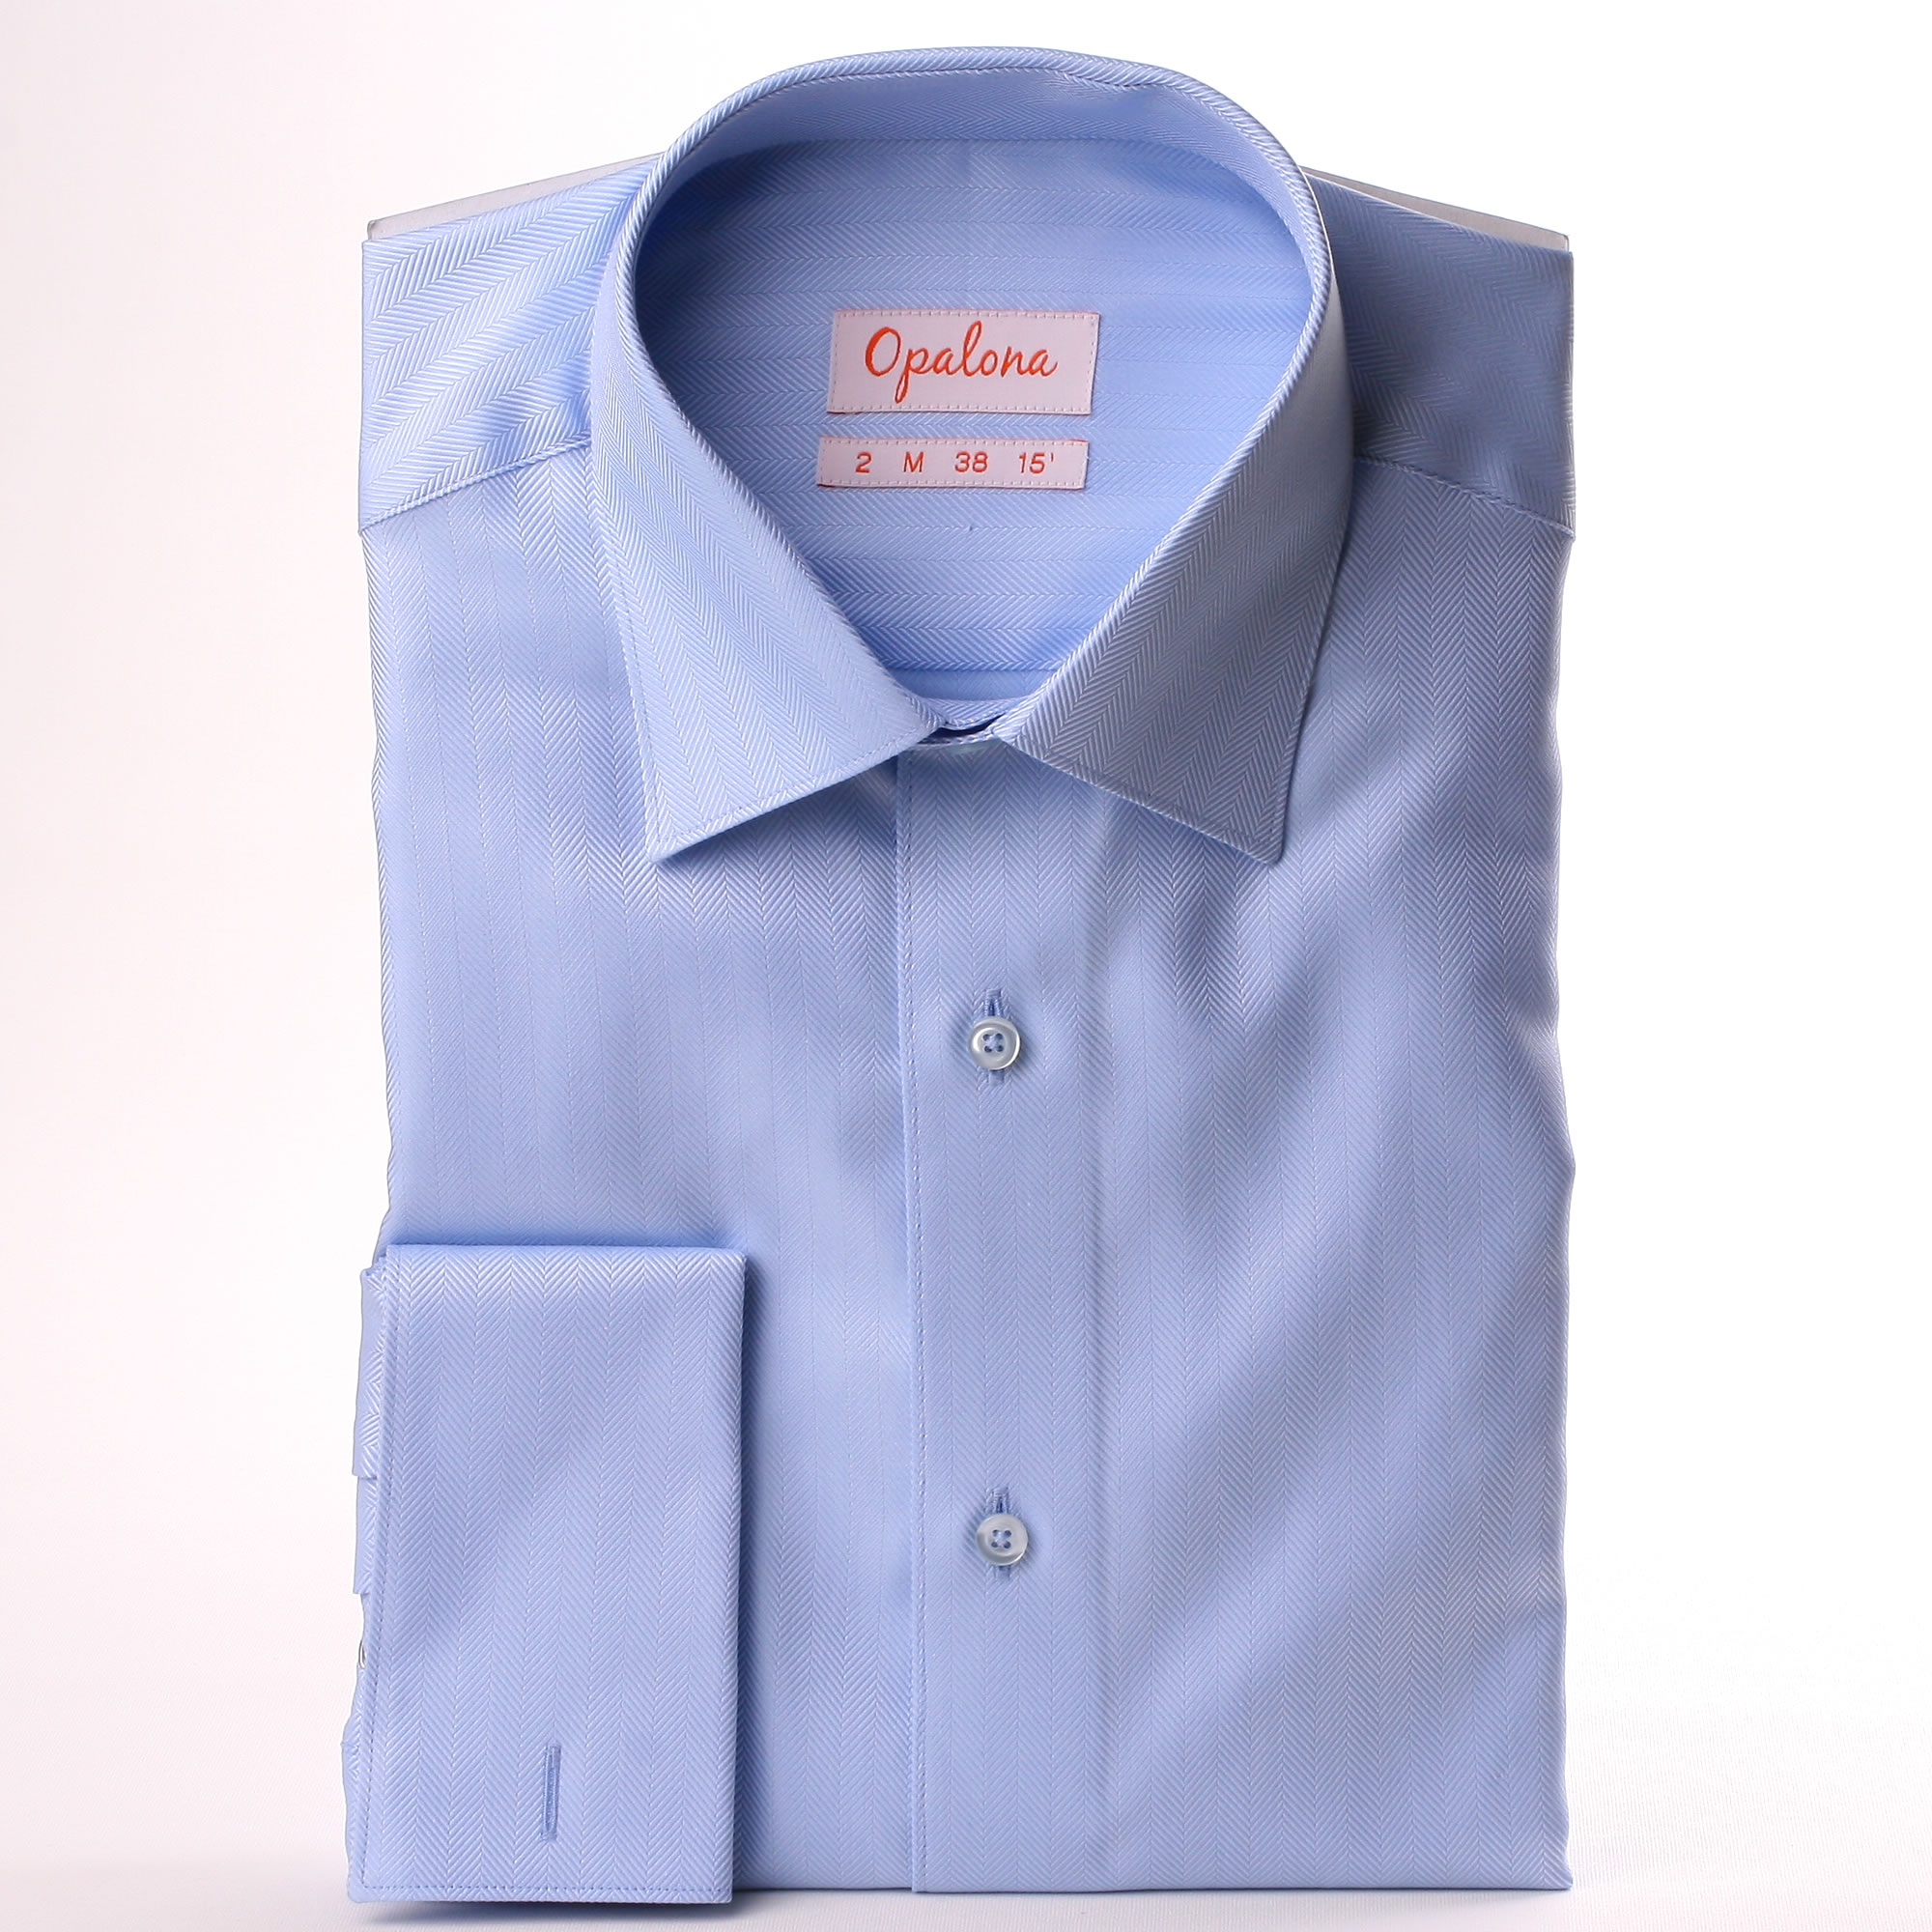 Shirt cuf driverlayer search engine for Light blue french cuff dress shirt